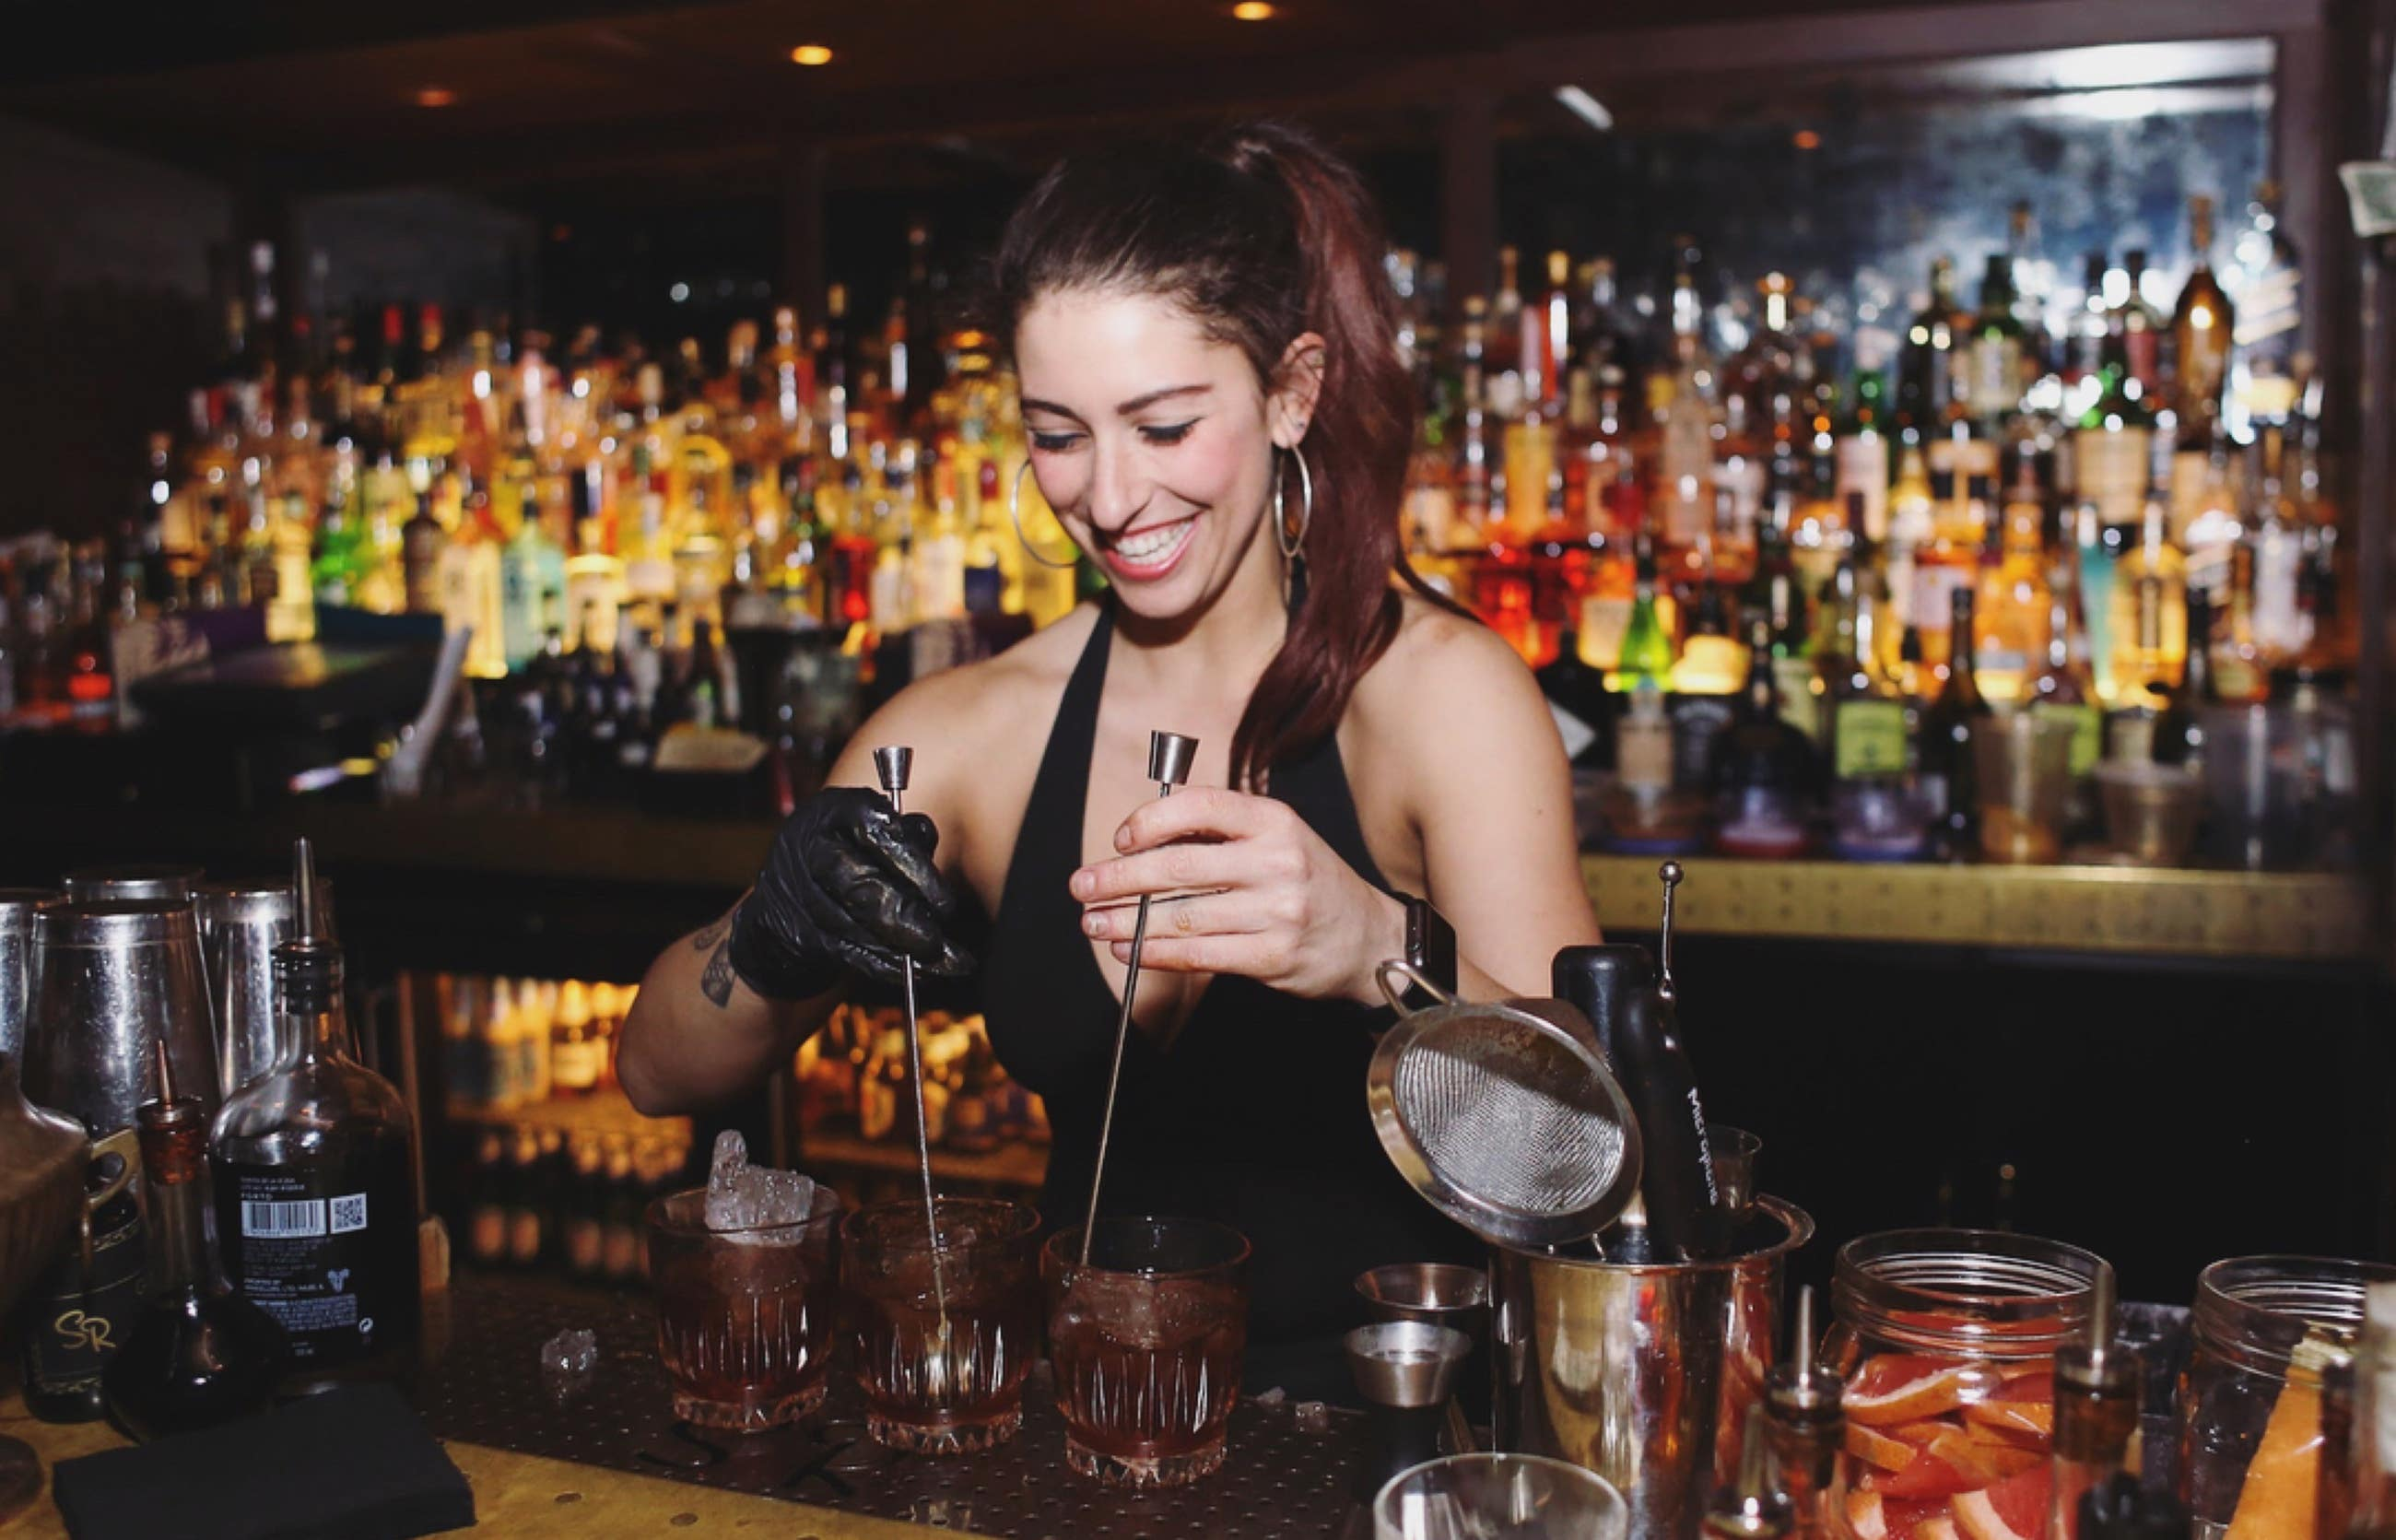 Yael Vengroff making drinks at The Spare Room